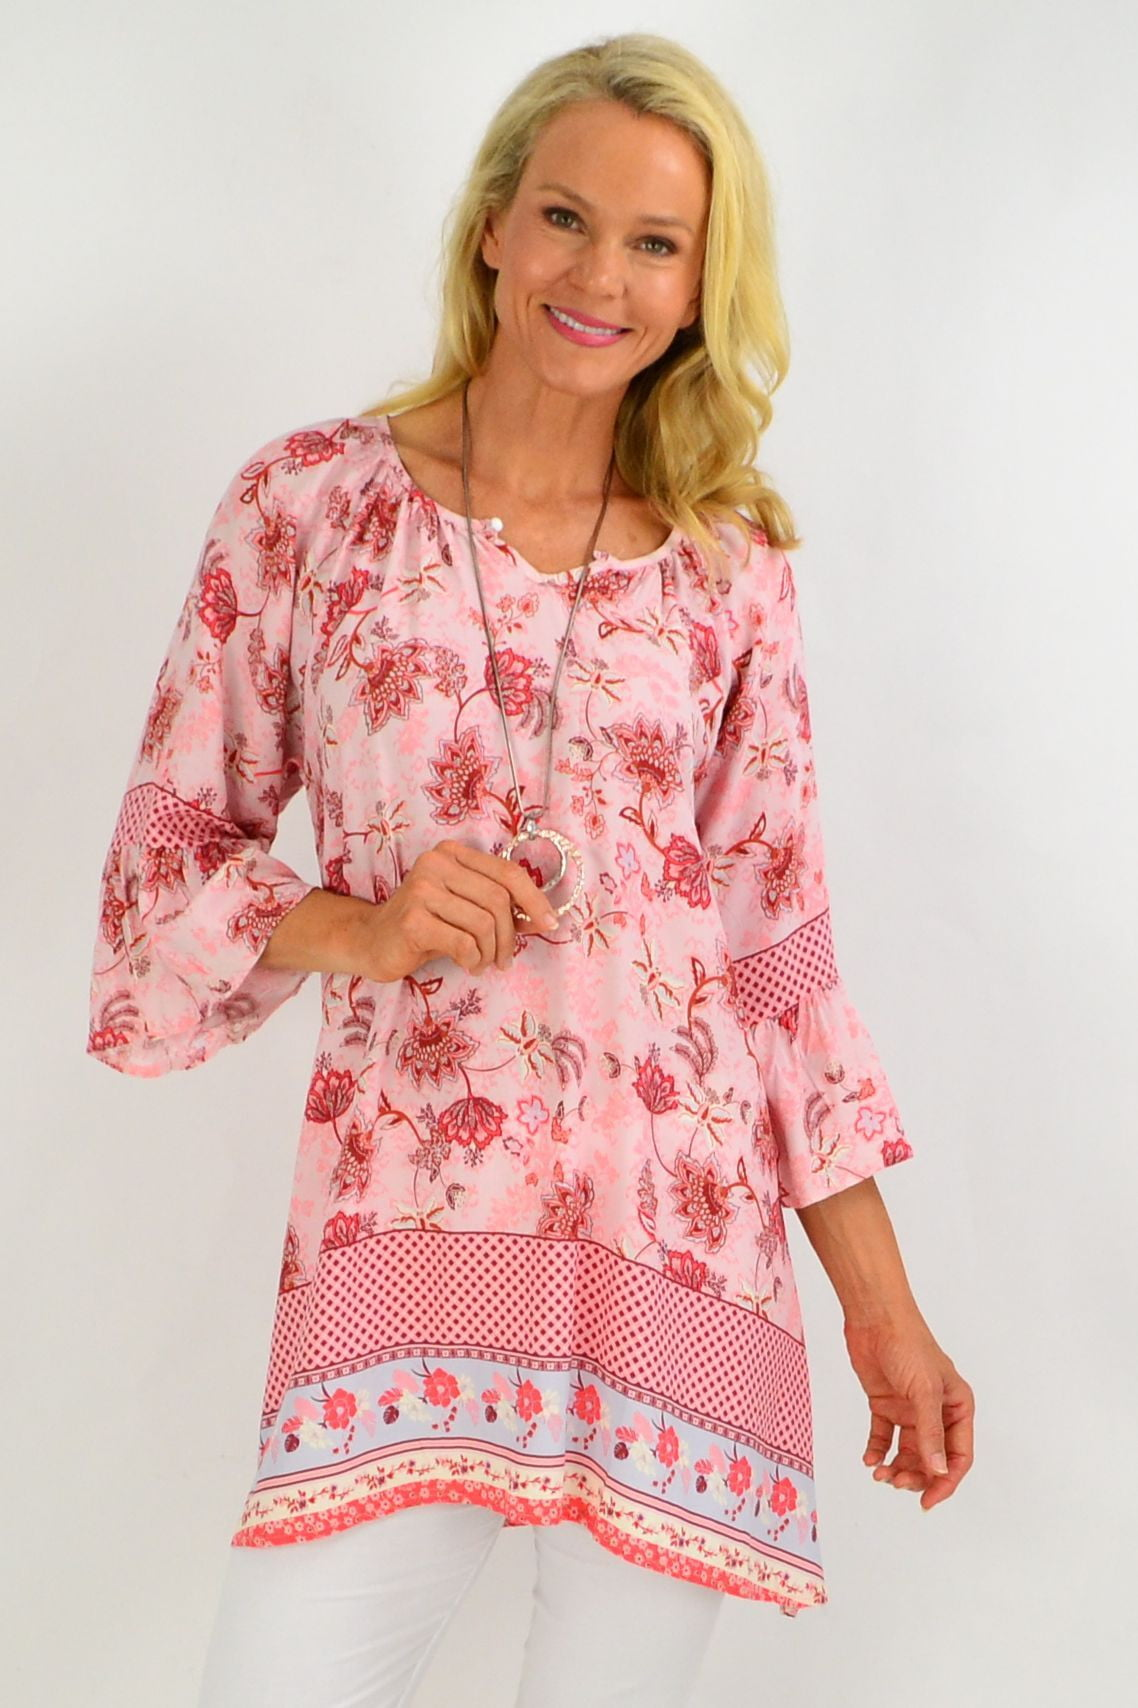 Soft Pink Check Floral Light & Pretty Tunic Top | I Love Tunics | Tunic Tops | Tunic | Tunic Dresses  | womens clothing online